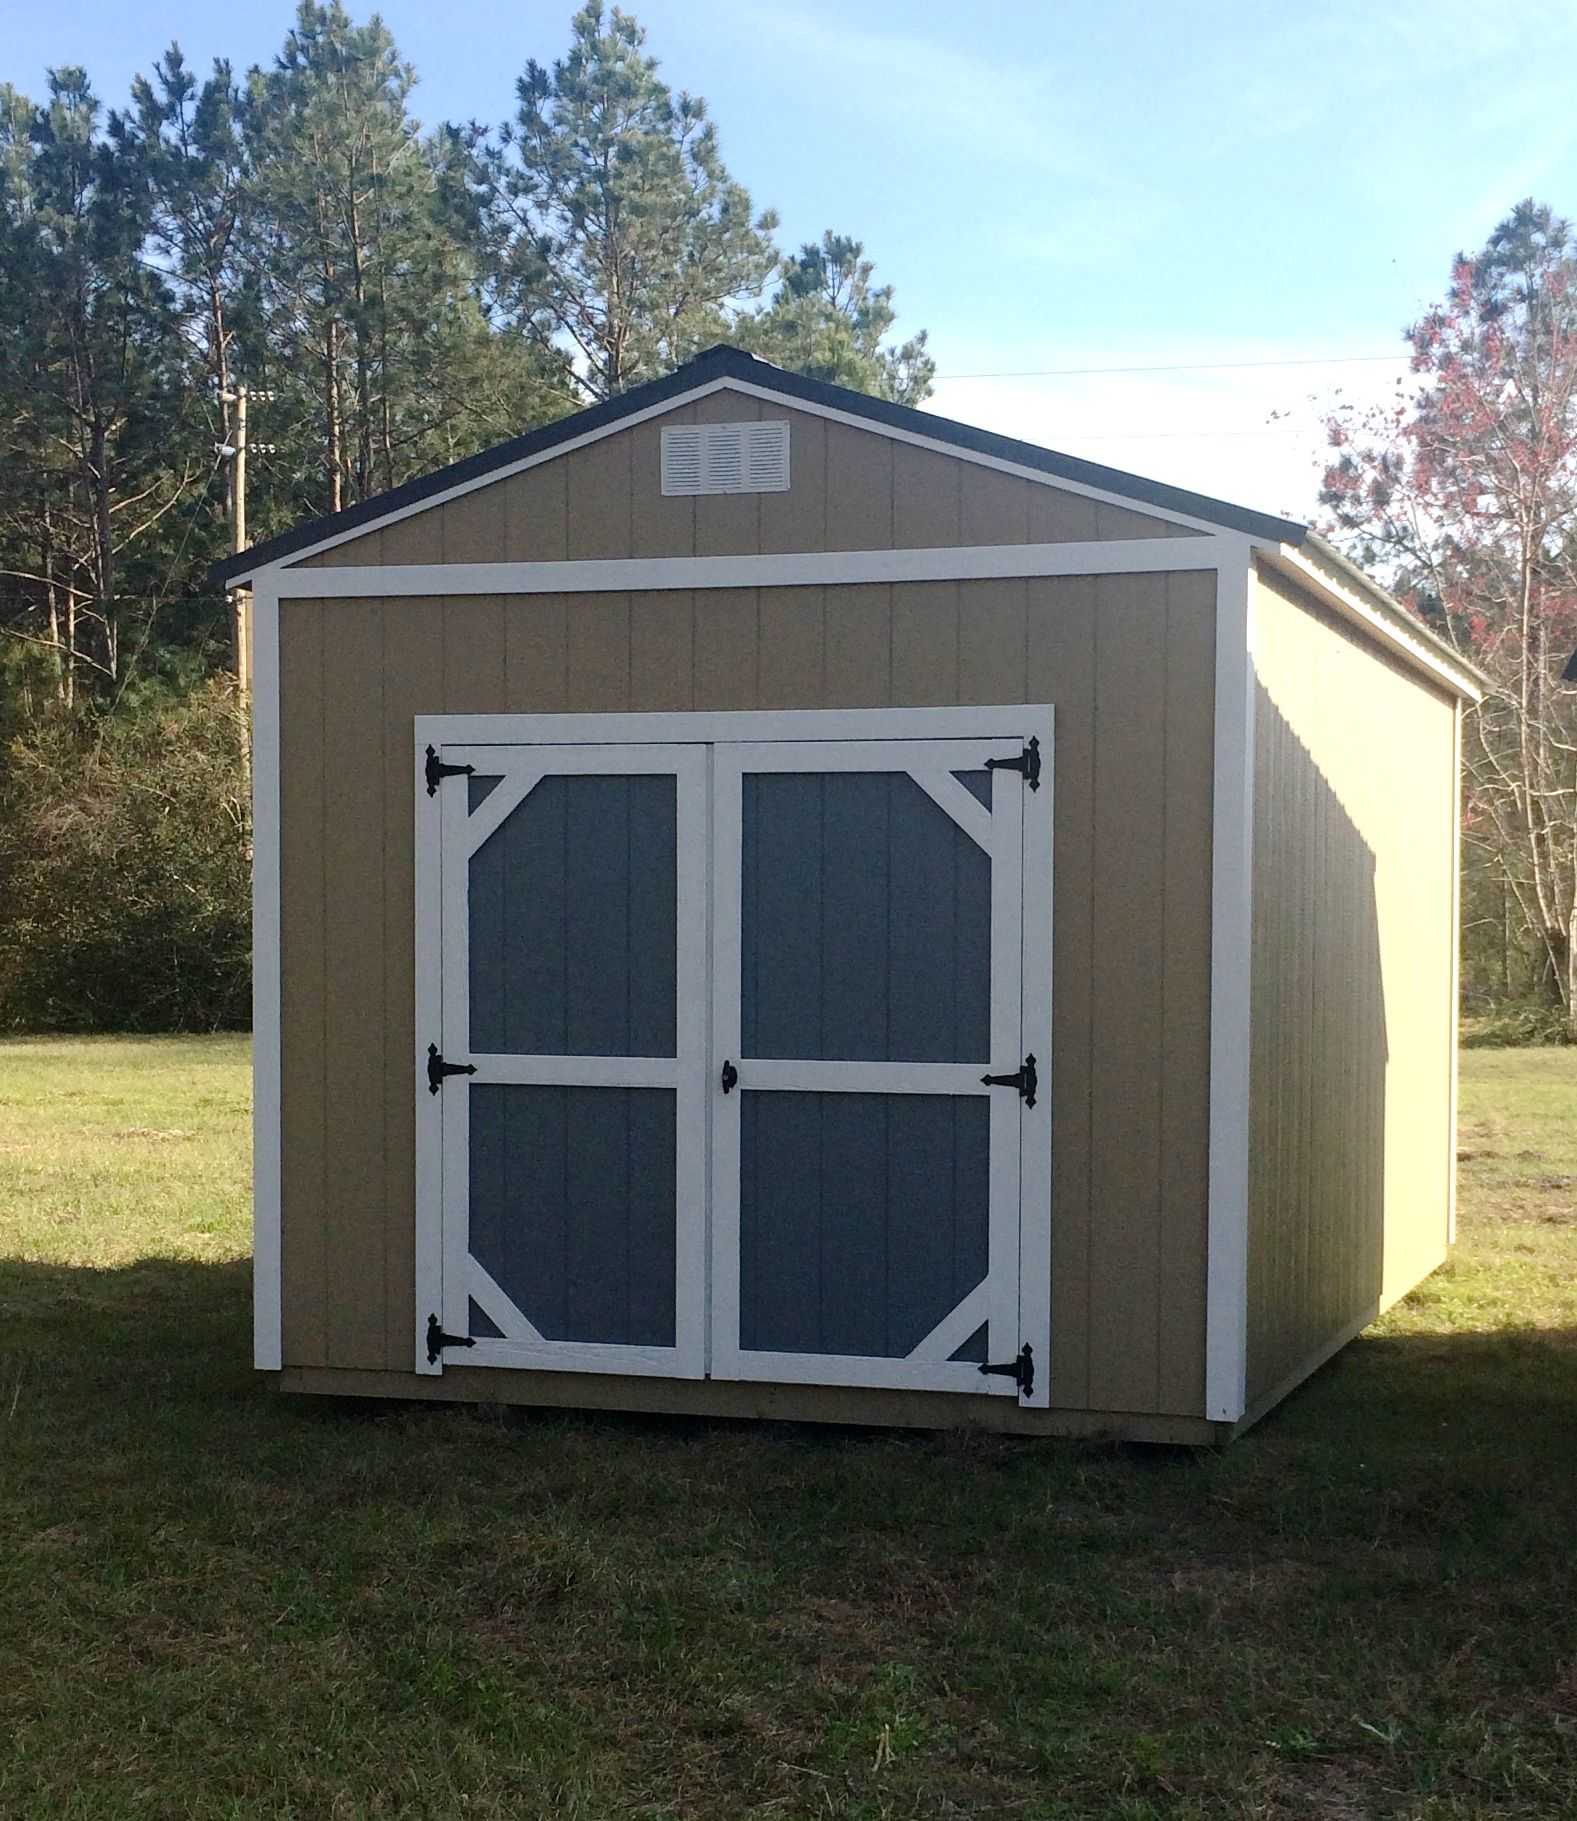 coastal portable buildings gs 10x16 taupe with charcoal roof and